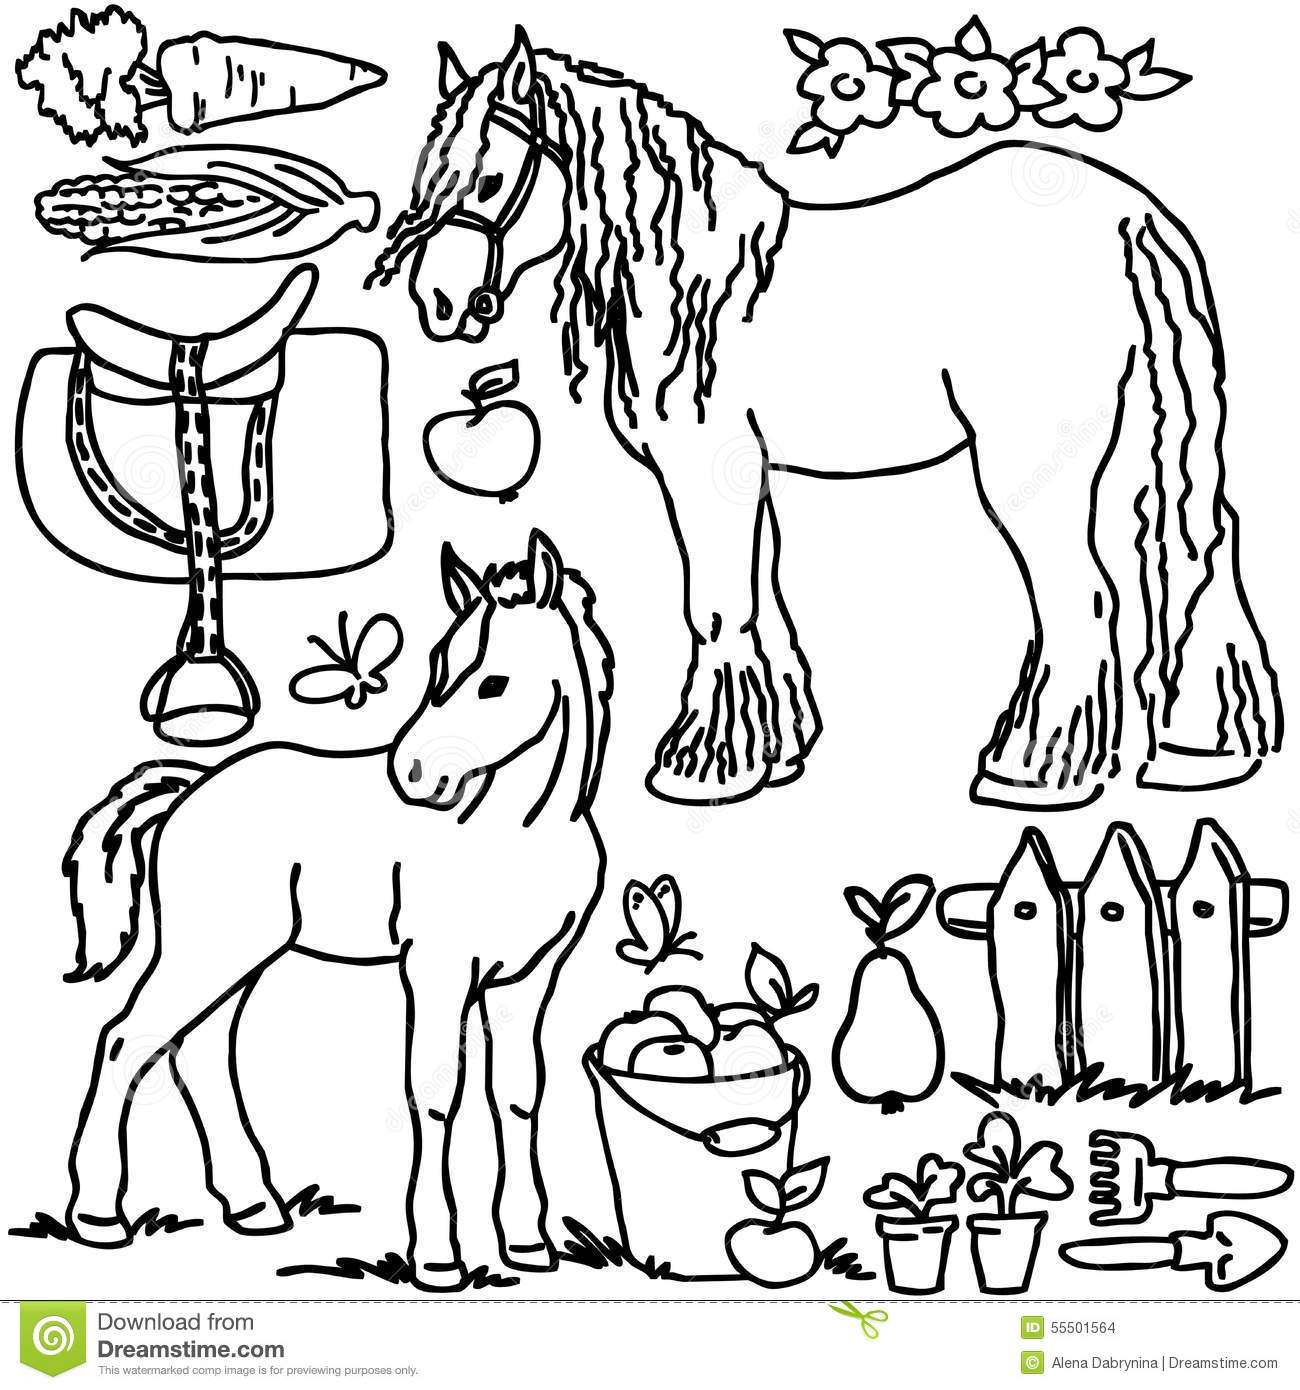 vet tools coloring pages - photo#18